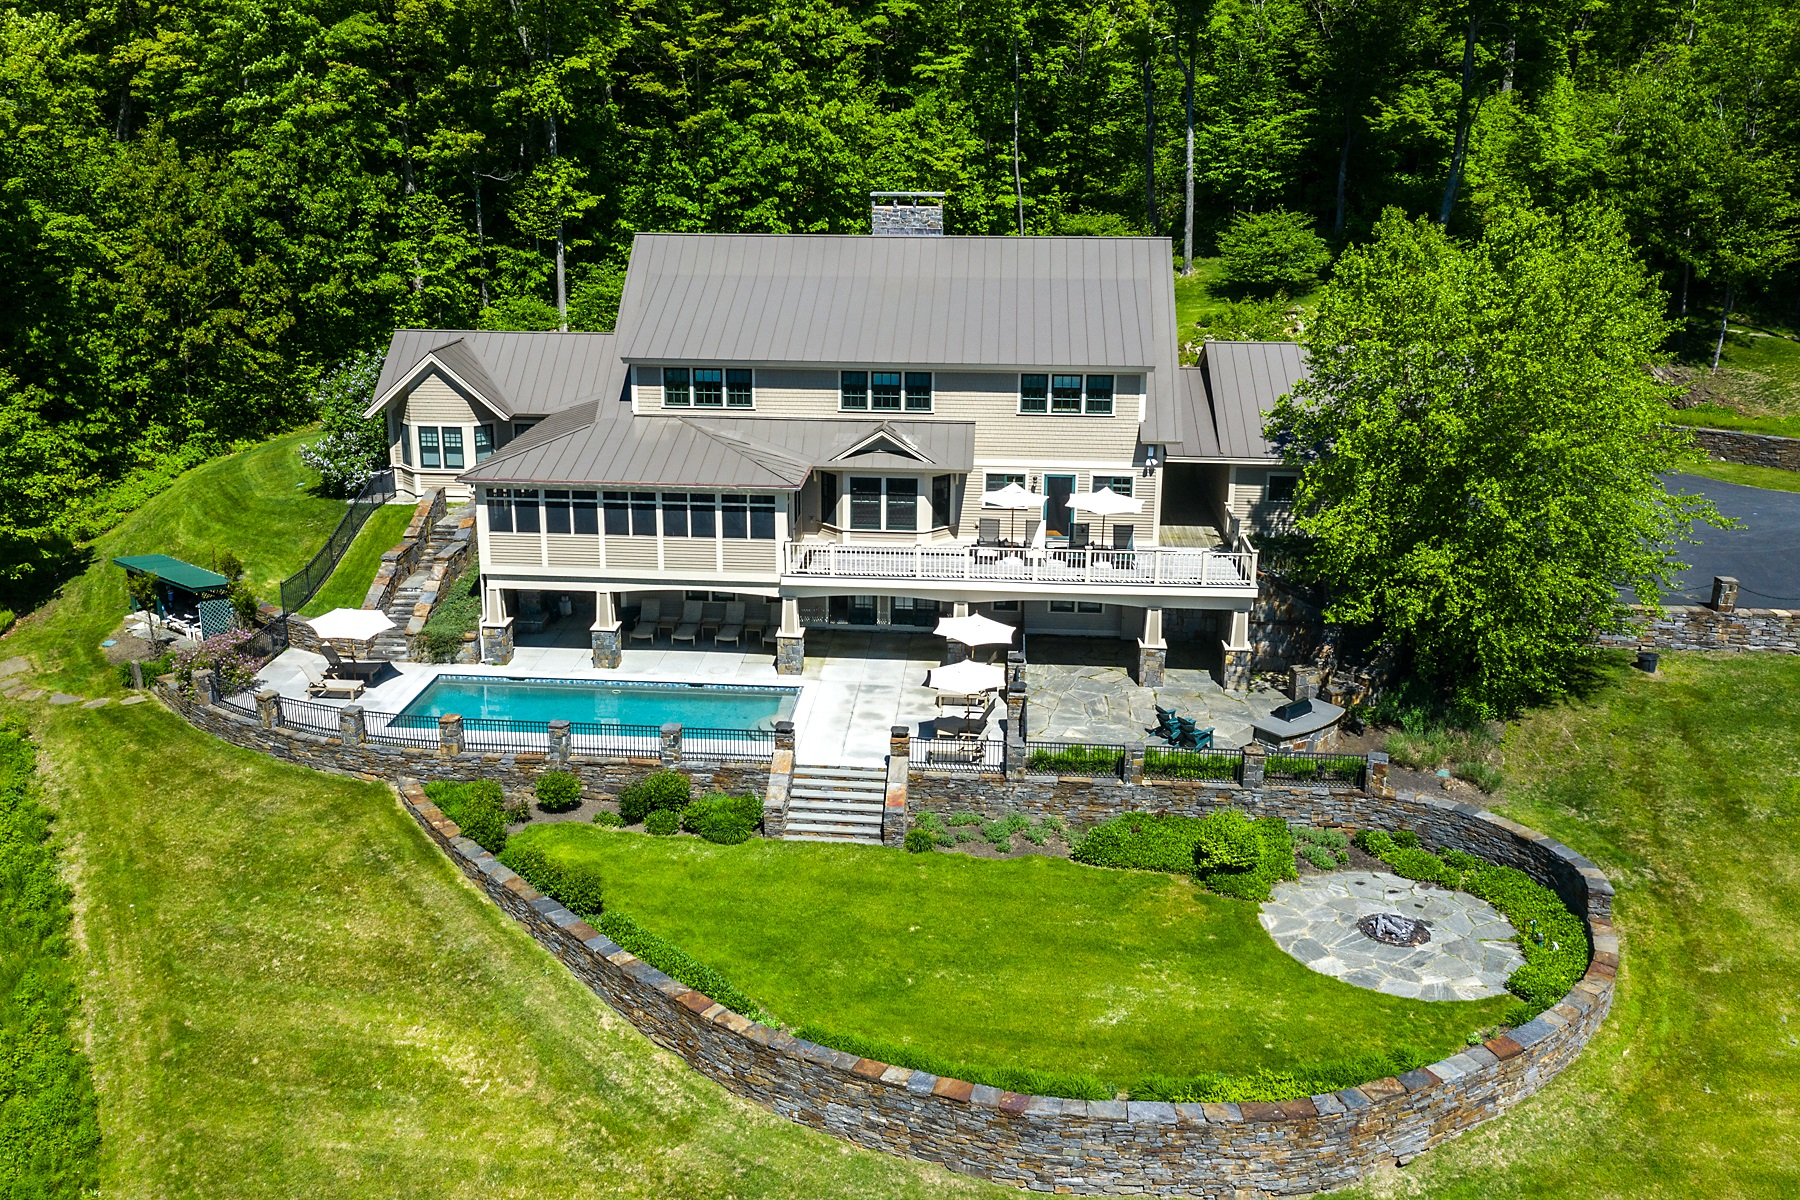 Single Family Homes for Sale at Elegance & Sophistication 165 Bennington Lane Quechee, Vermont 05059 United States